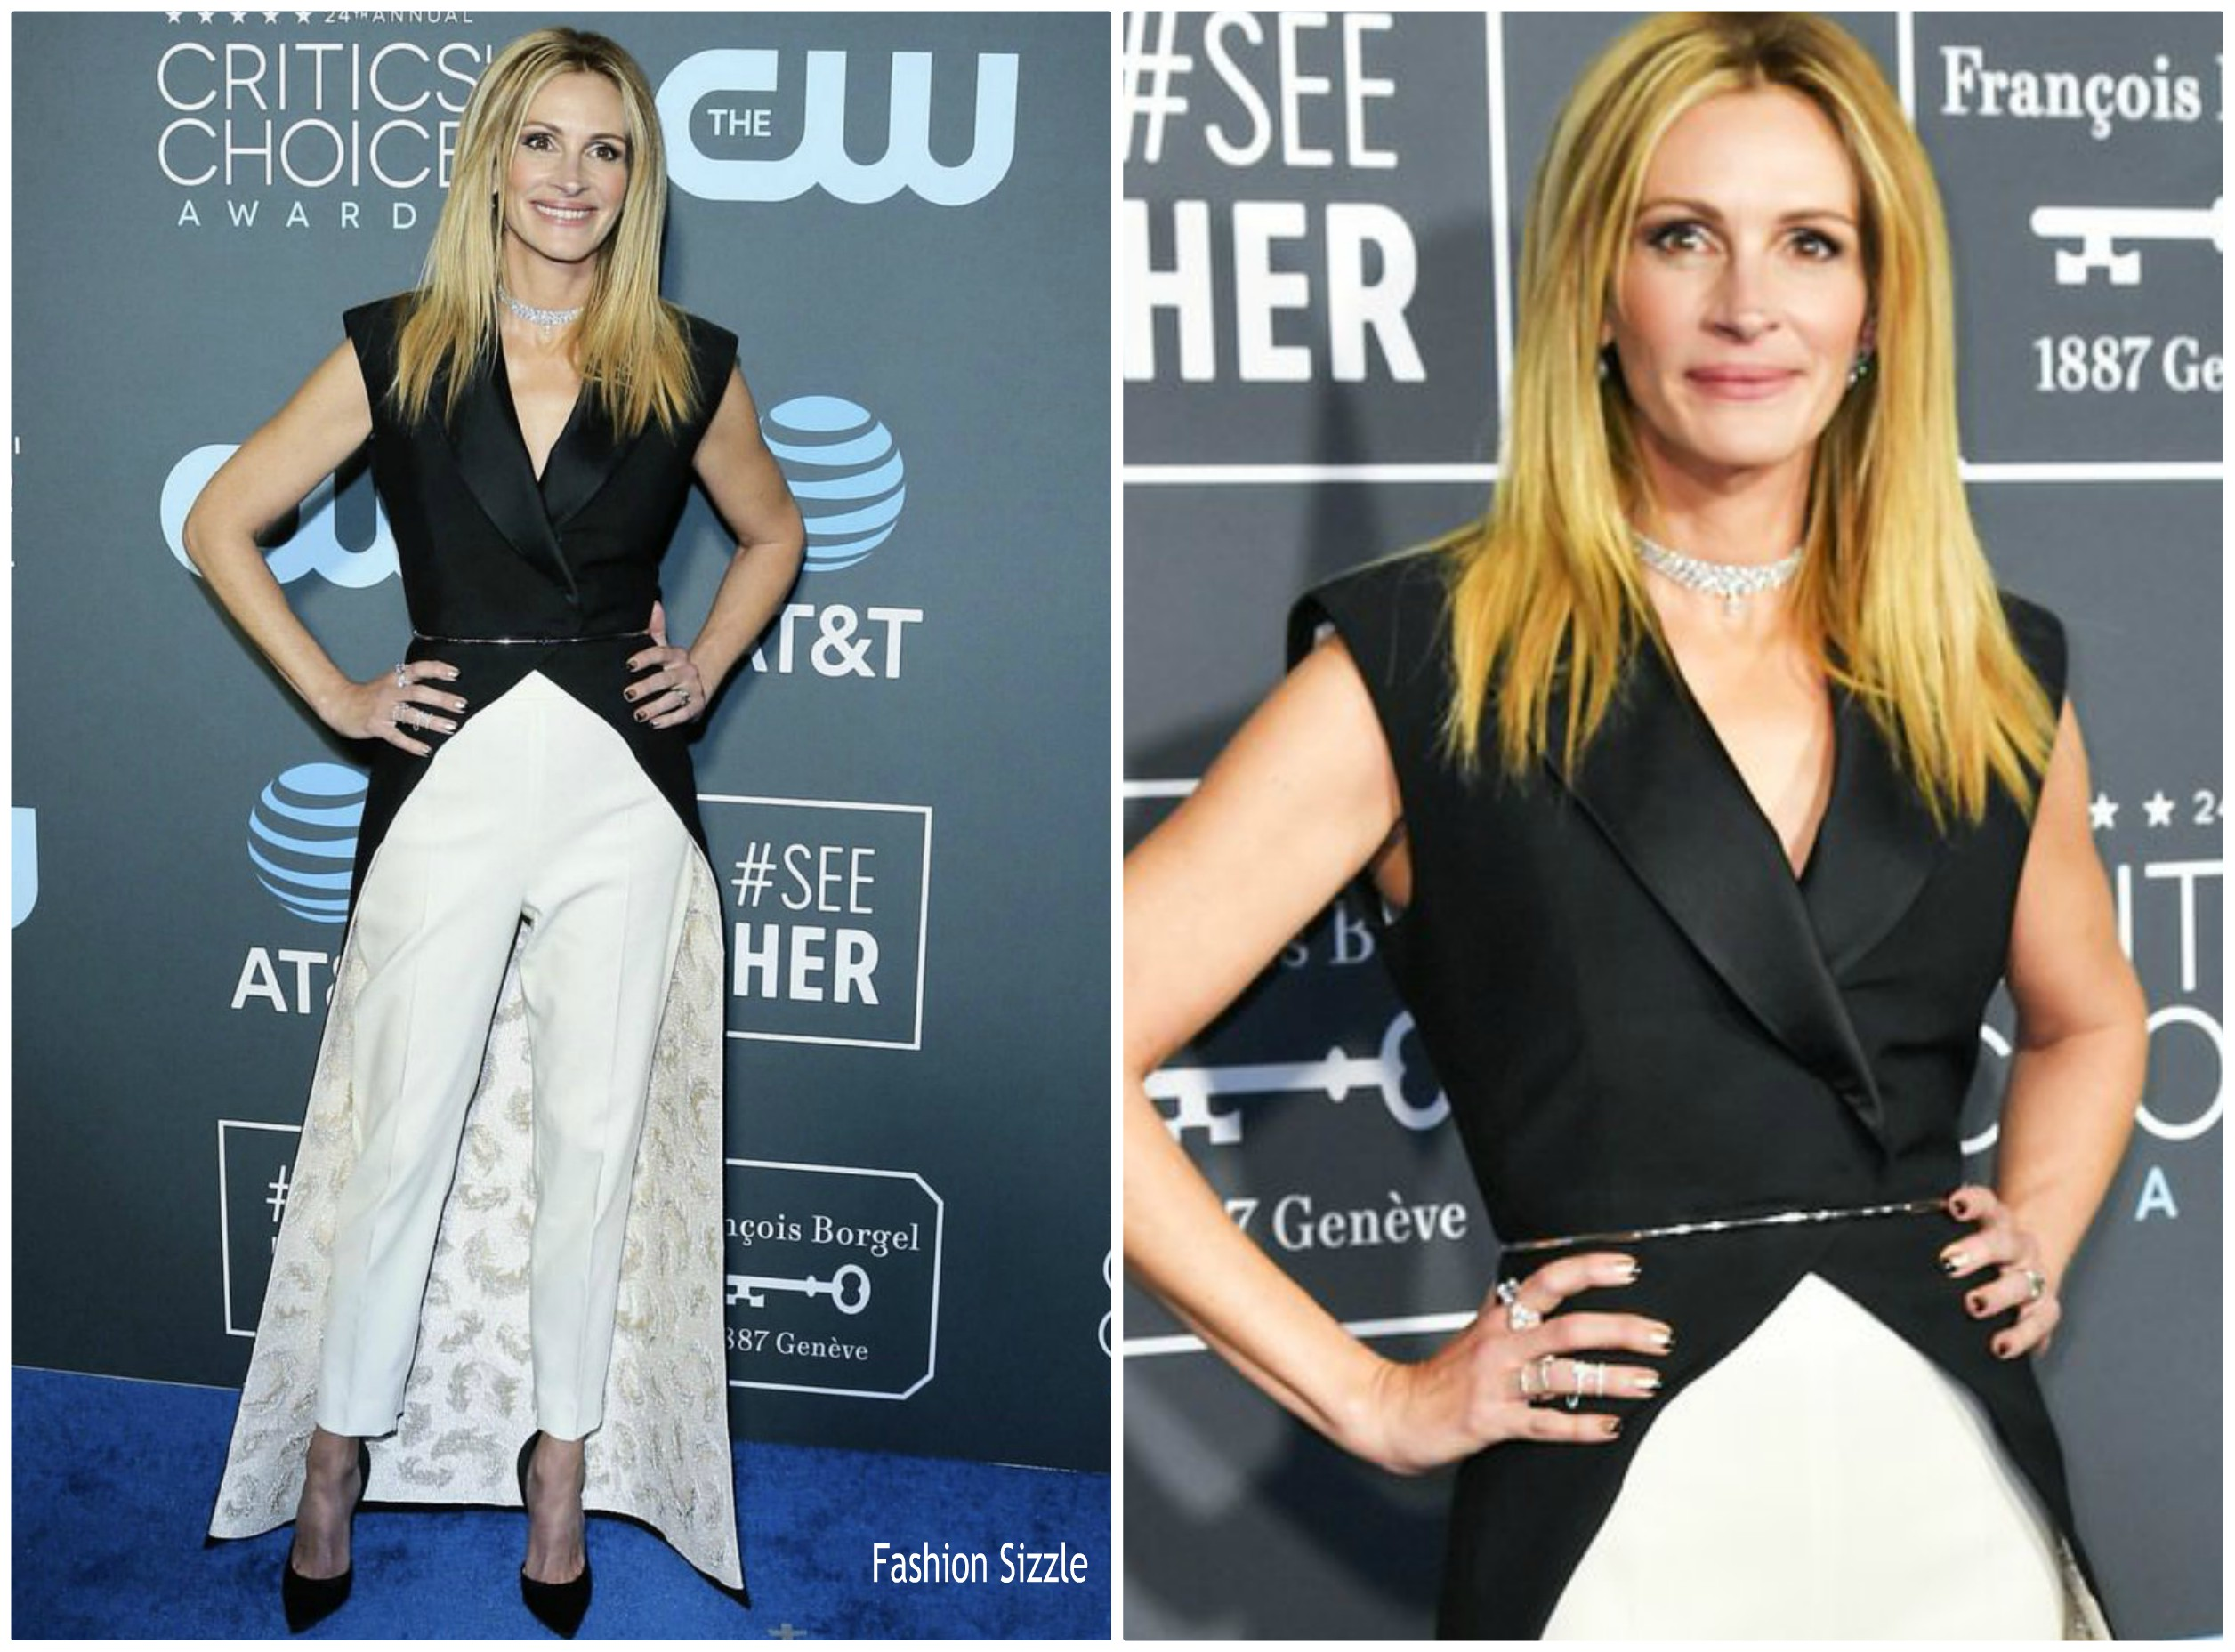 julia-roberts-in-louis-vuitton-2019-crtics-choice-awards